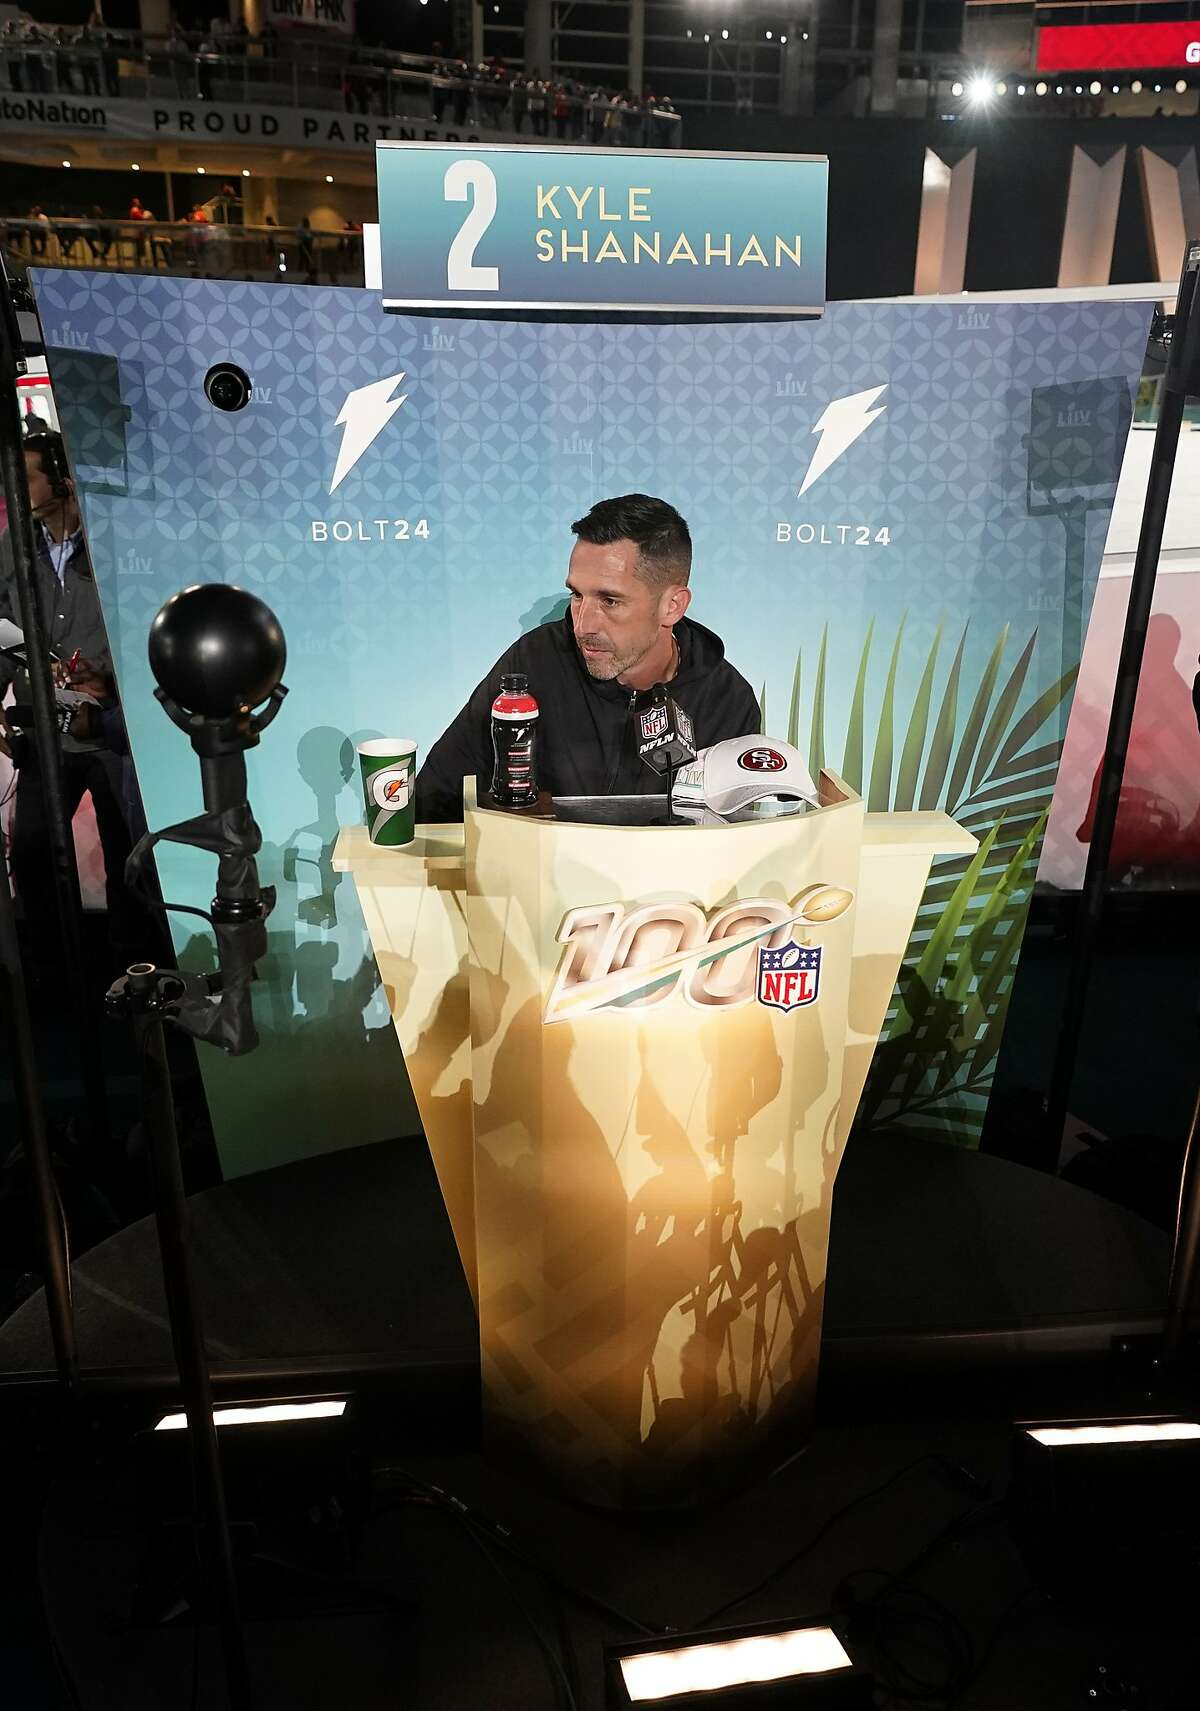 San Francisco 49ers coach Kyle Shanahan speaks to the media during Opening Night for the NFL Super Bowl 54 football game Monday, Jan. 27, 2020, at Marlins Park in Miami. (AP Photo/David J. Phillip)